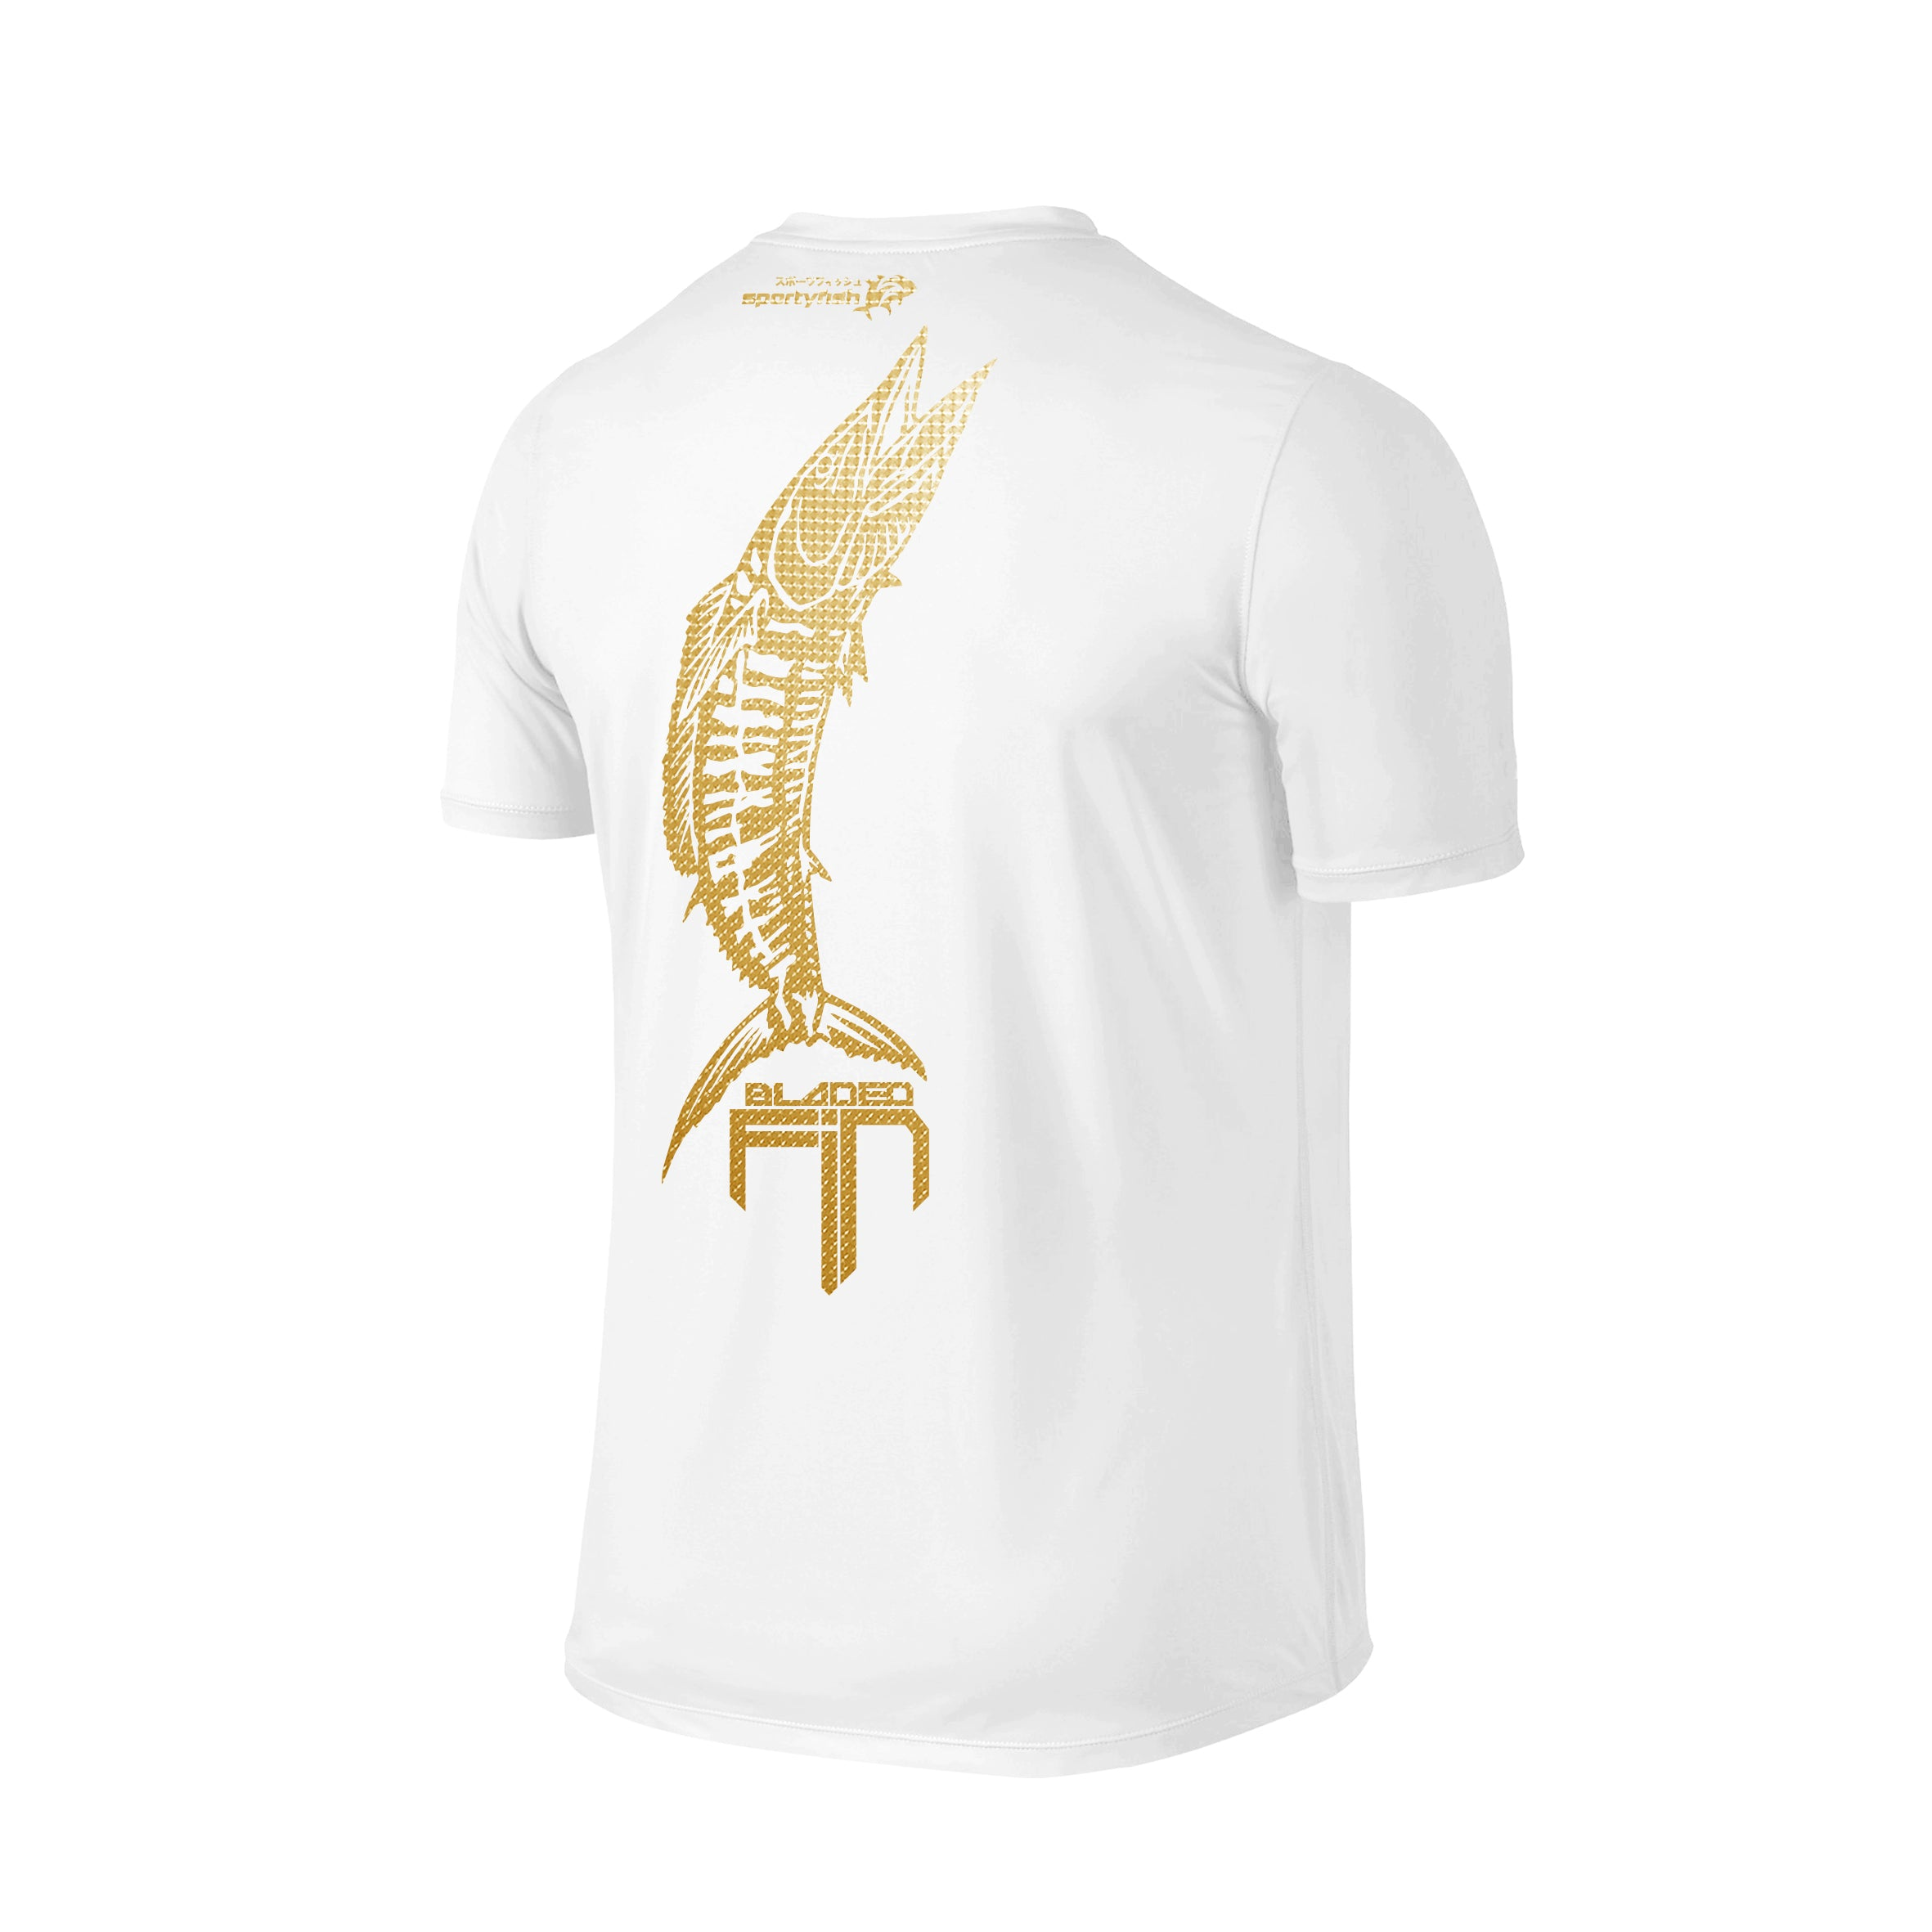 SportyFish Shield Series Classic White T-shirt(back view) Gold Print: Wahoo